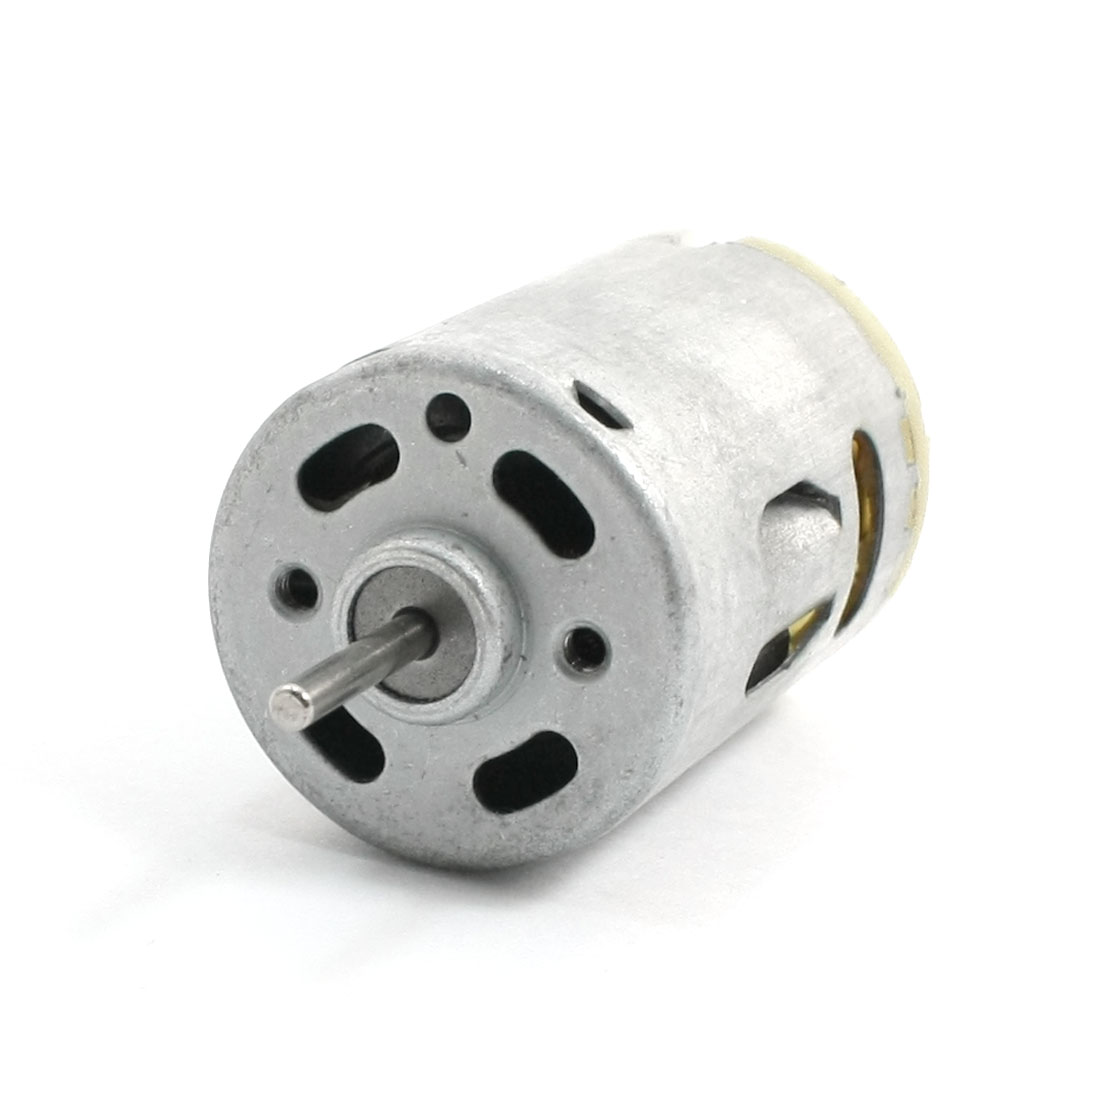 Blower-14000R-Min-DC-12V-High-Torque-Mini-Micro-Vibration-Motor